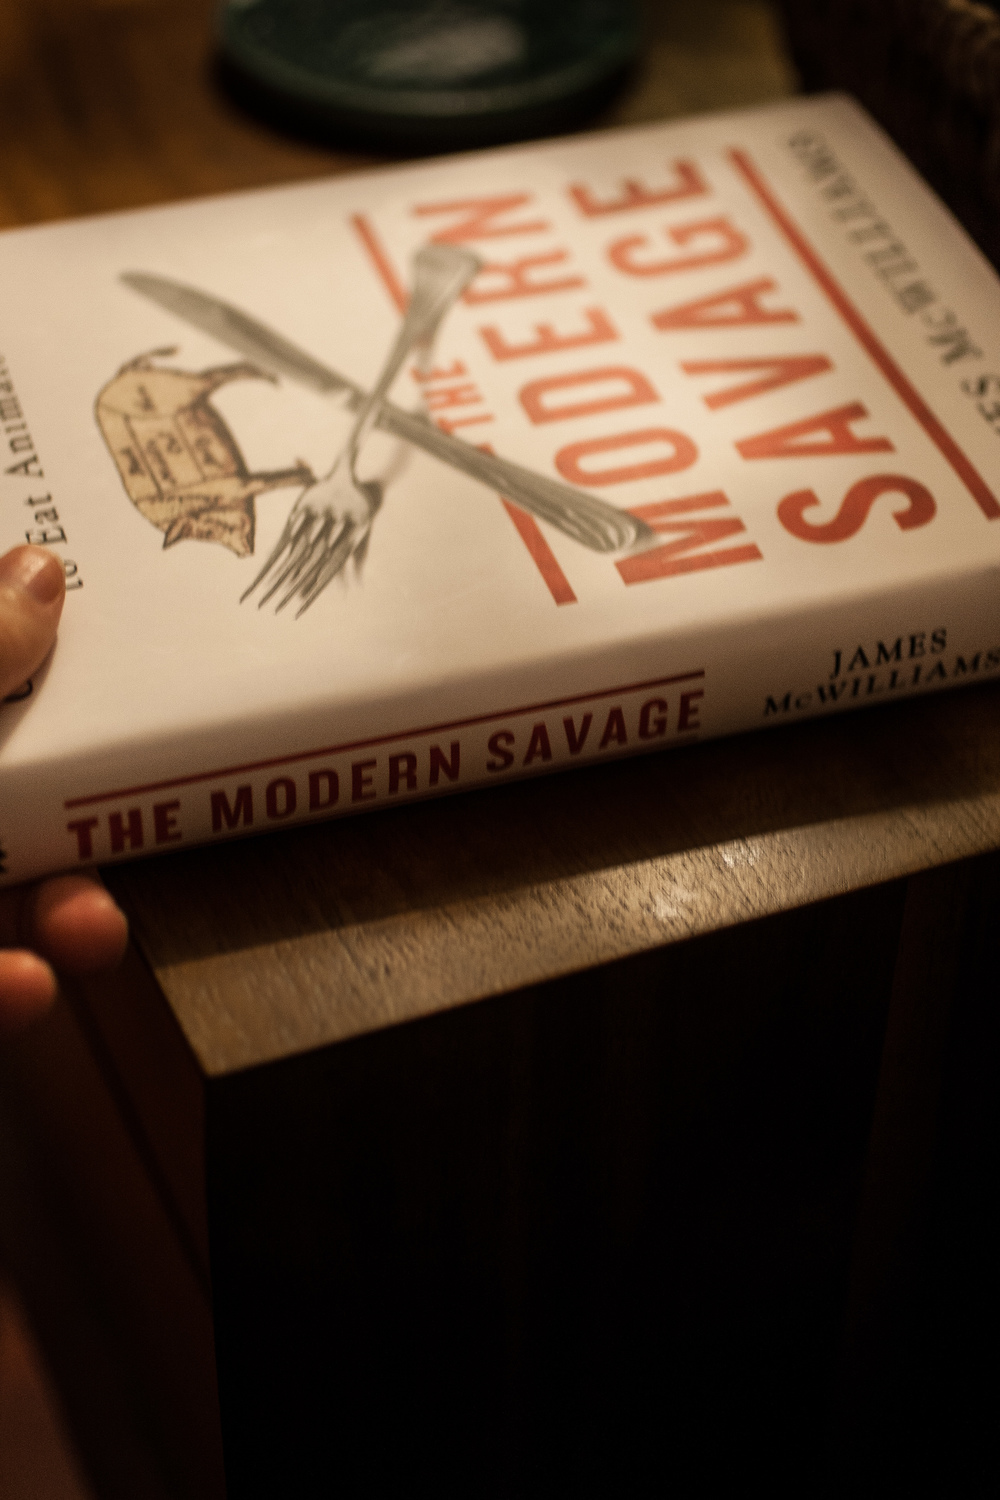 Produce On Parade - The Modern Savage by James McWilliams - A Book Review